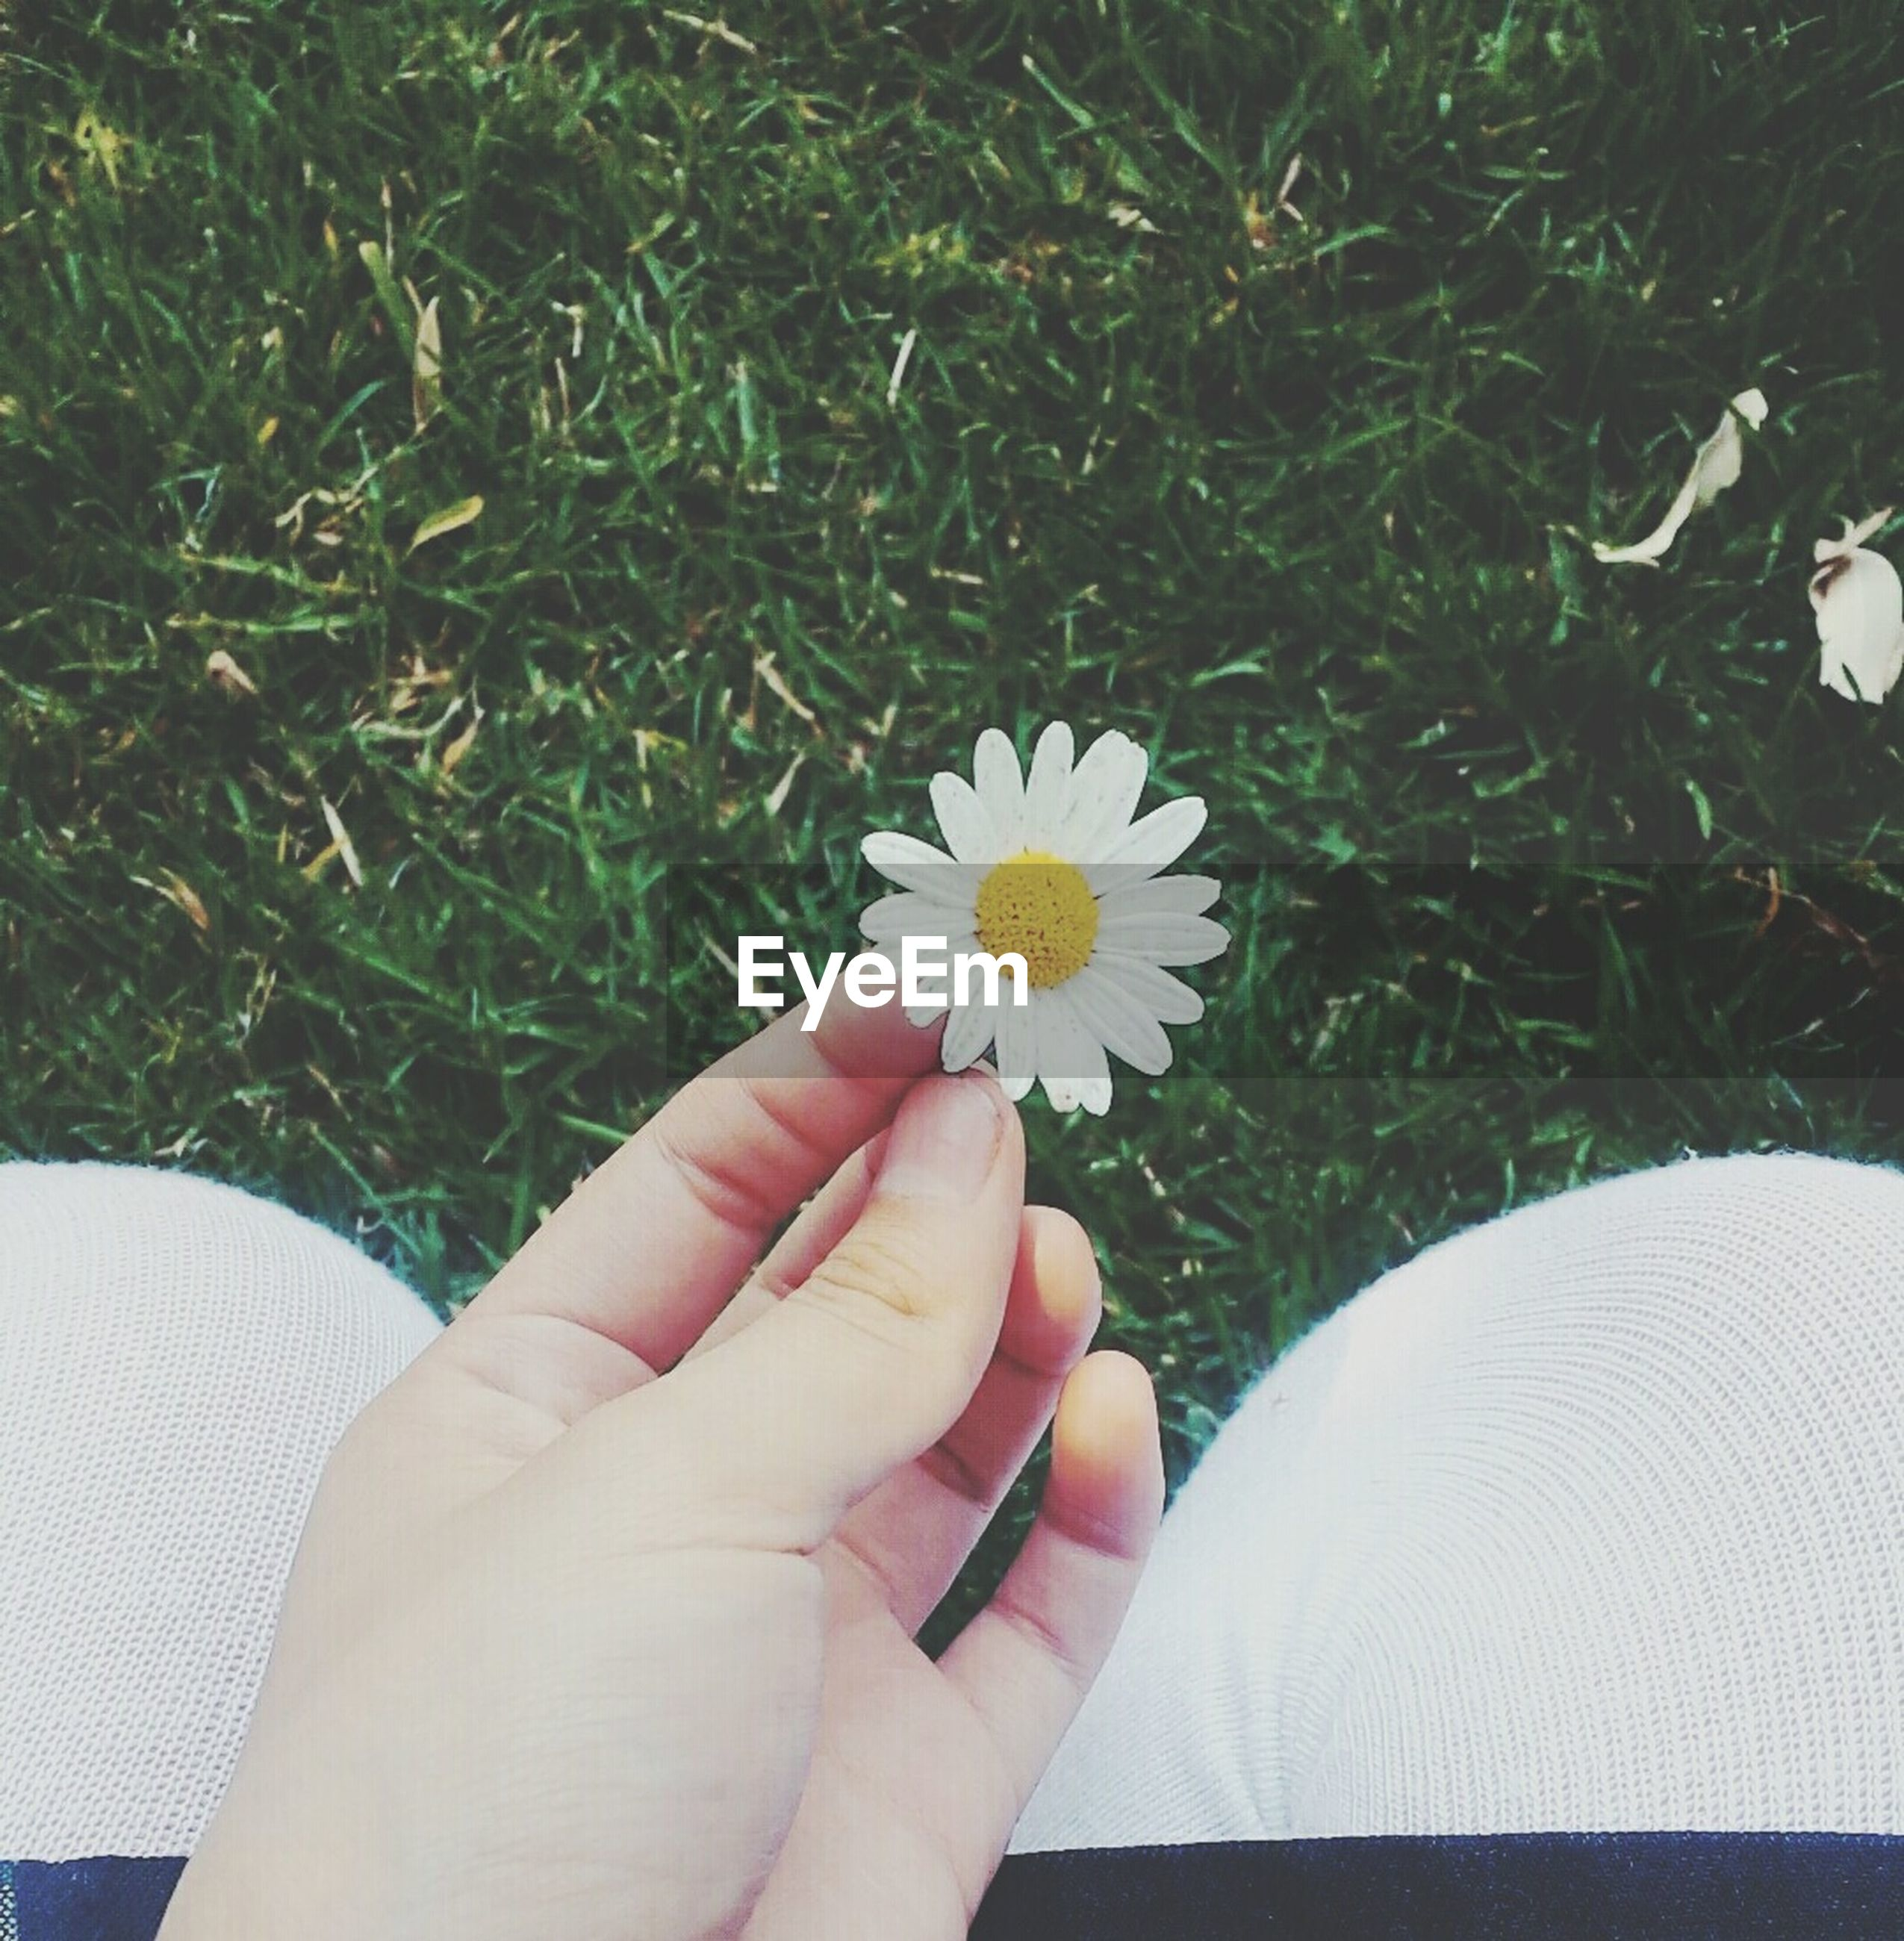 CROPPED IMAGE OF PERSON HOLDING DAISY FLOWERS